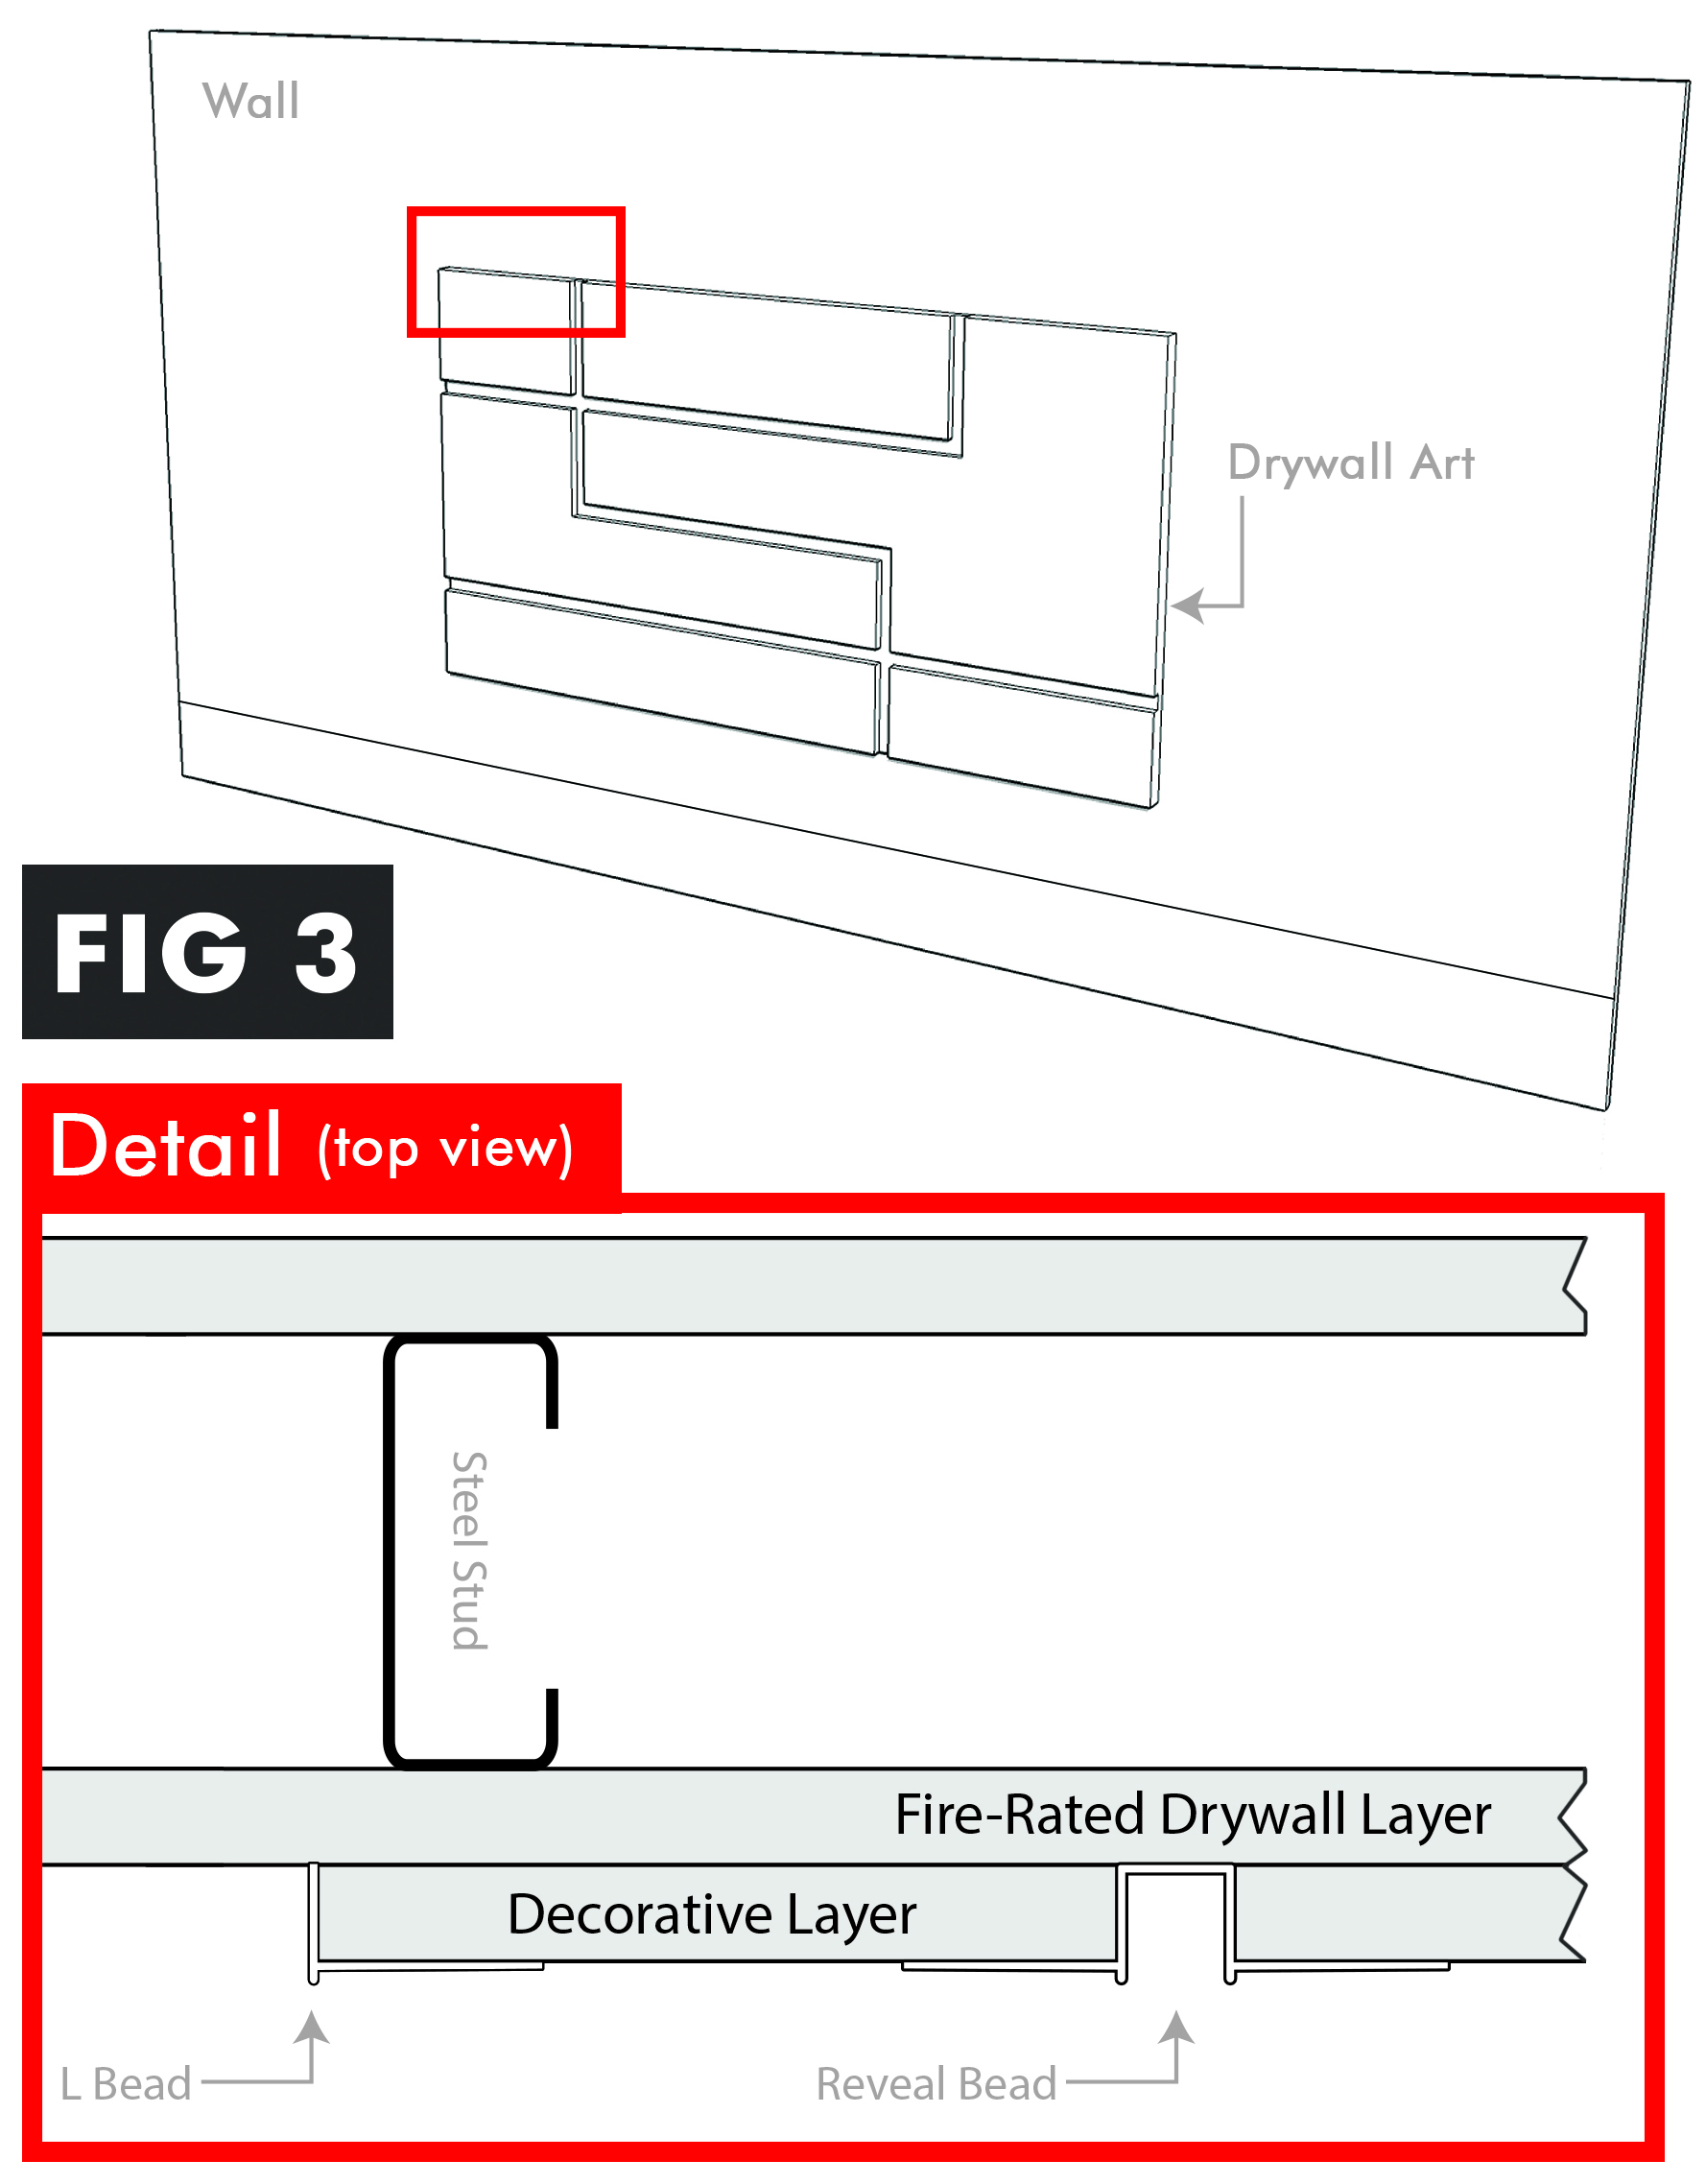 Build a drywall art design over only a section of your wall and attach it on top of your continuous barrier layer of drywall to maintain fire rating.